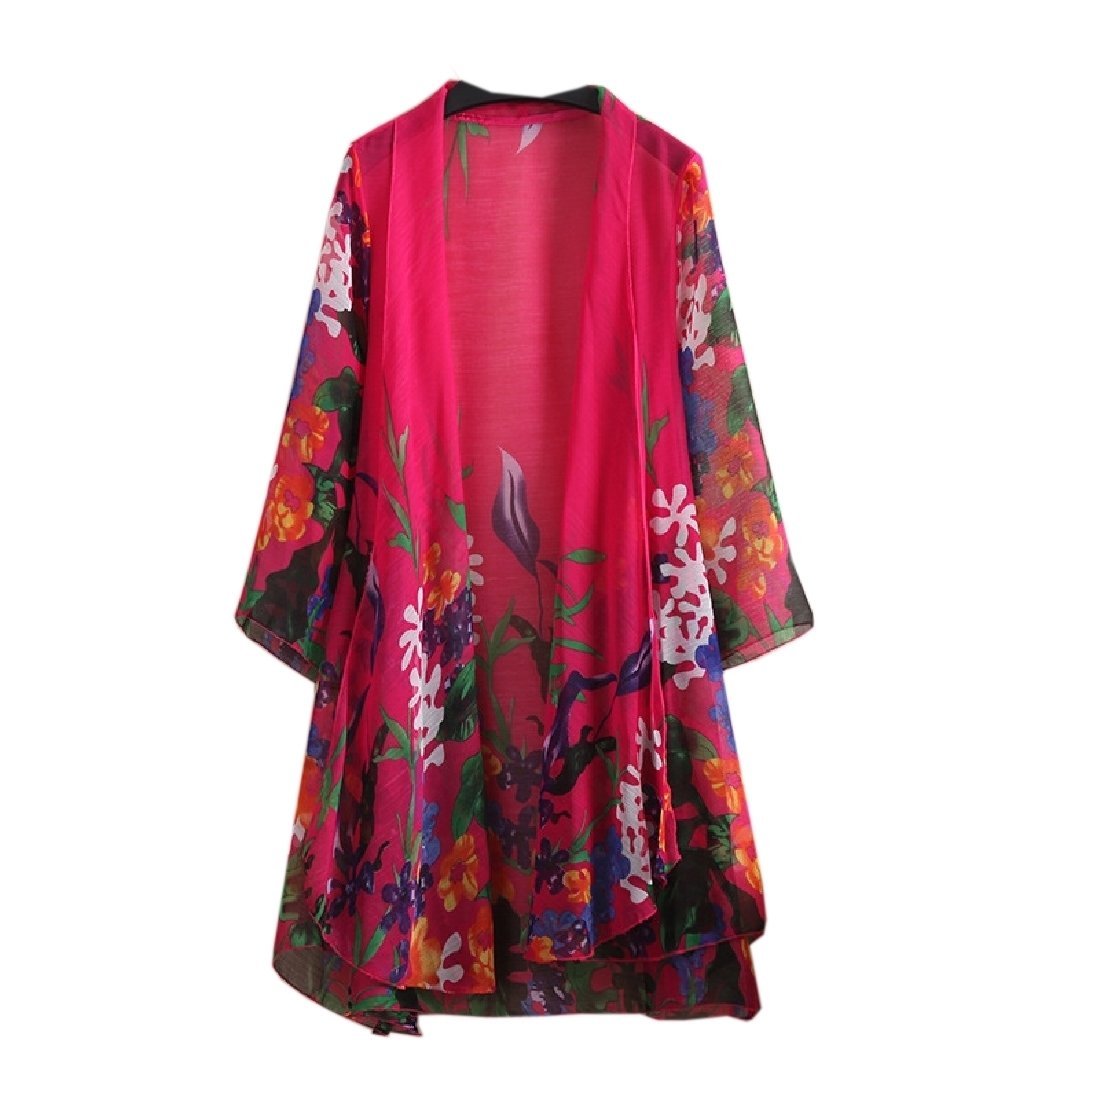 YUNY Women Chiffon Floral Longline Relaxed Fit Coat Sunscreen Clothing Rose red 3XL